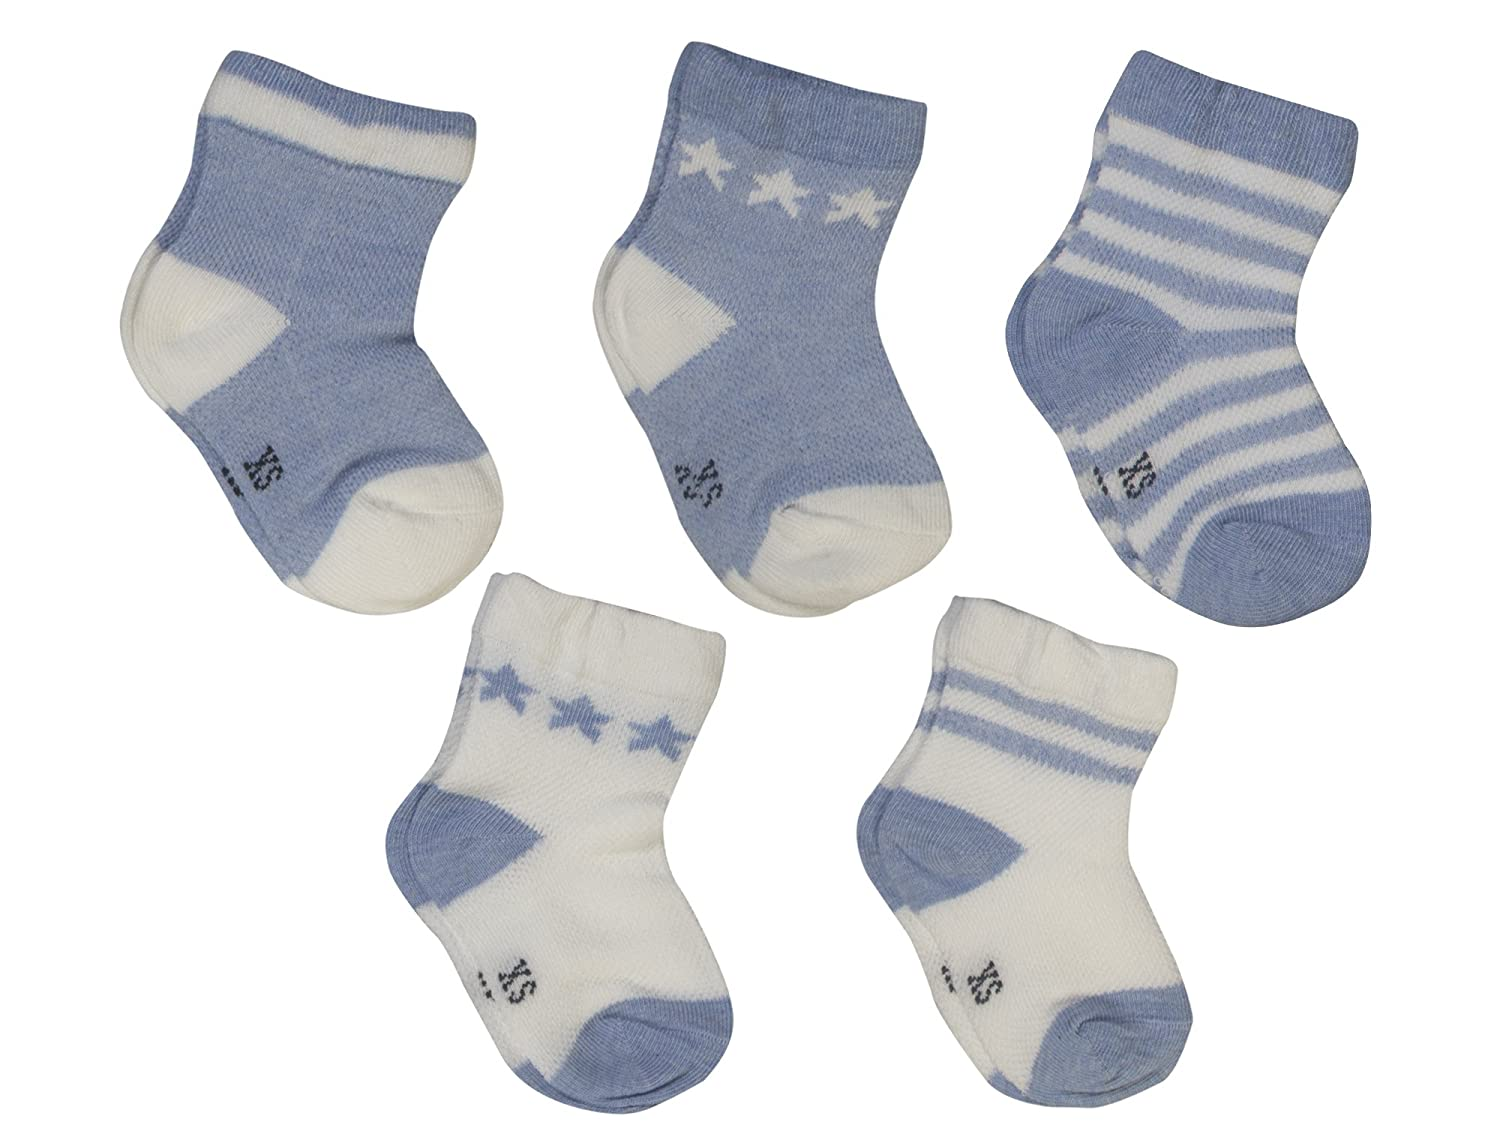 Baby Boys Girls Toddler Cotton Socks 5 Pairs Cute Soft Thin Breathable Absorbent Stretchable Star Stripe Pattern